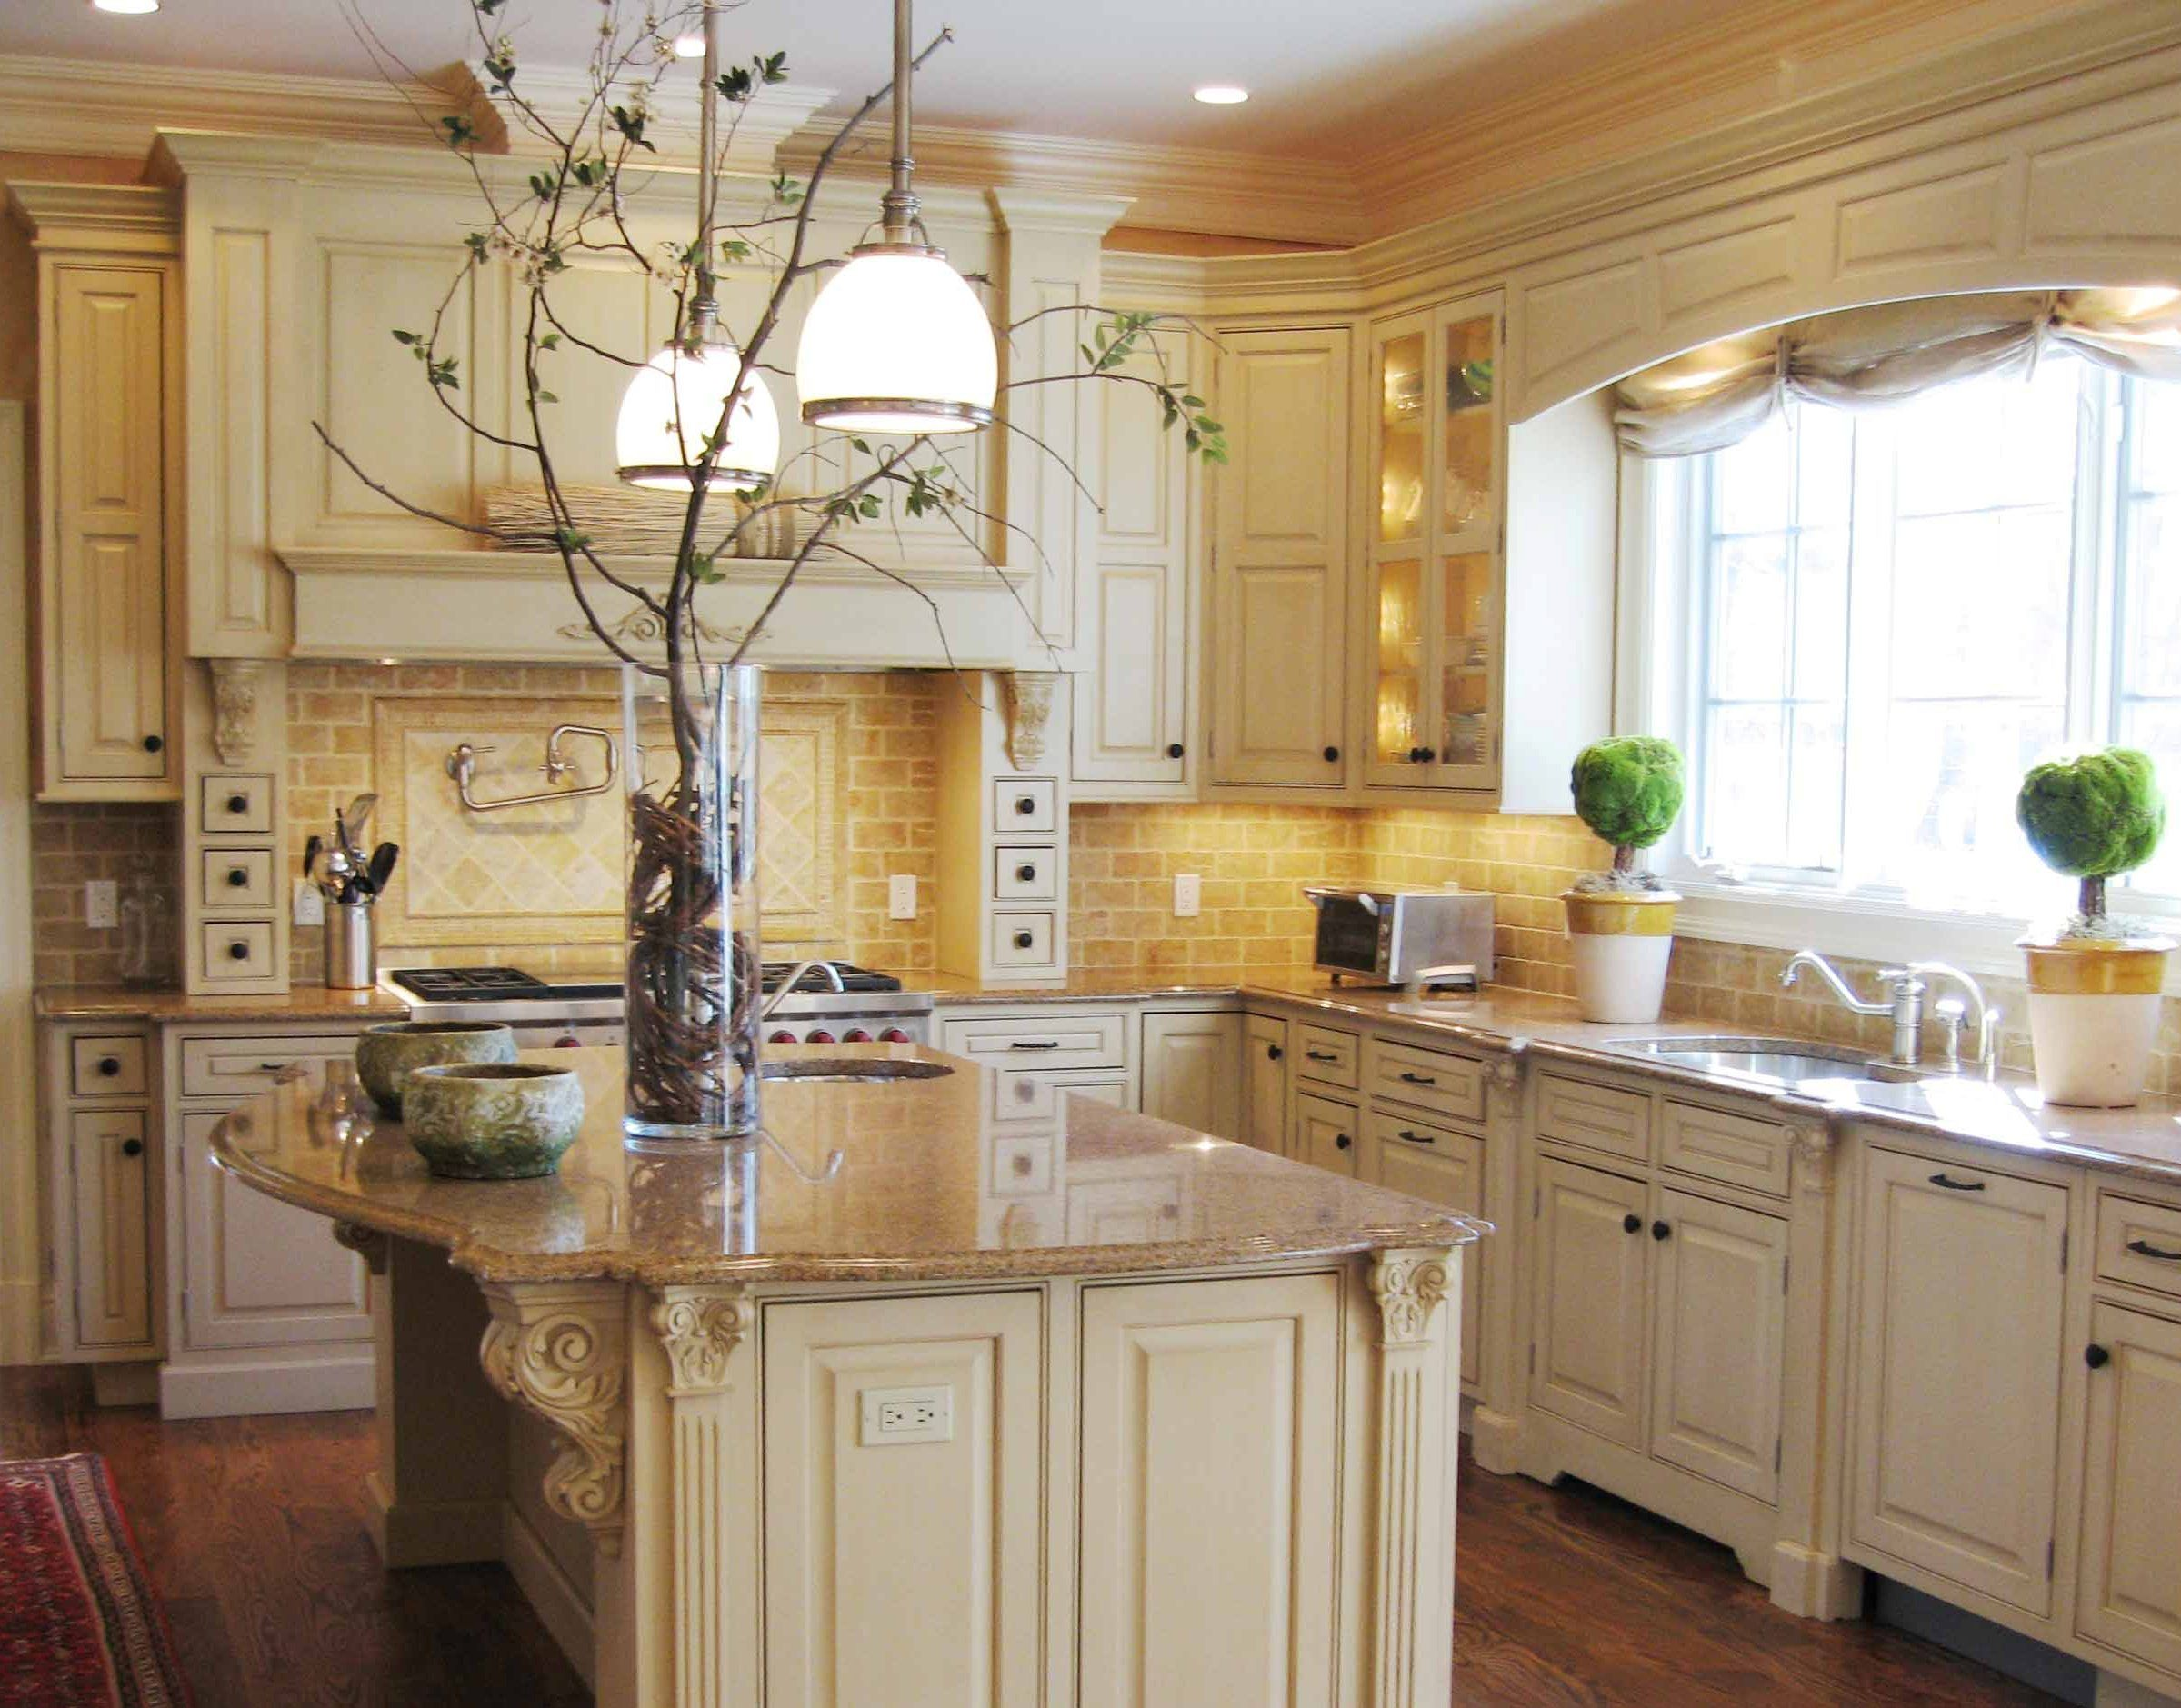 Tuscan kitchen design style highly features earthy paint for Cream kitchen paint ideas